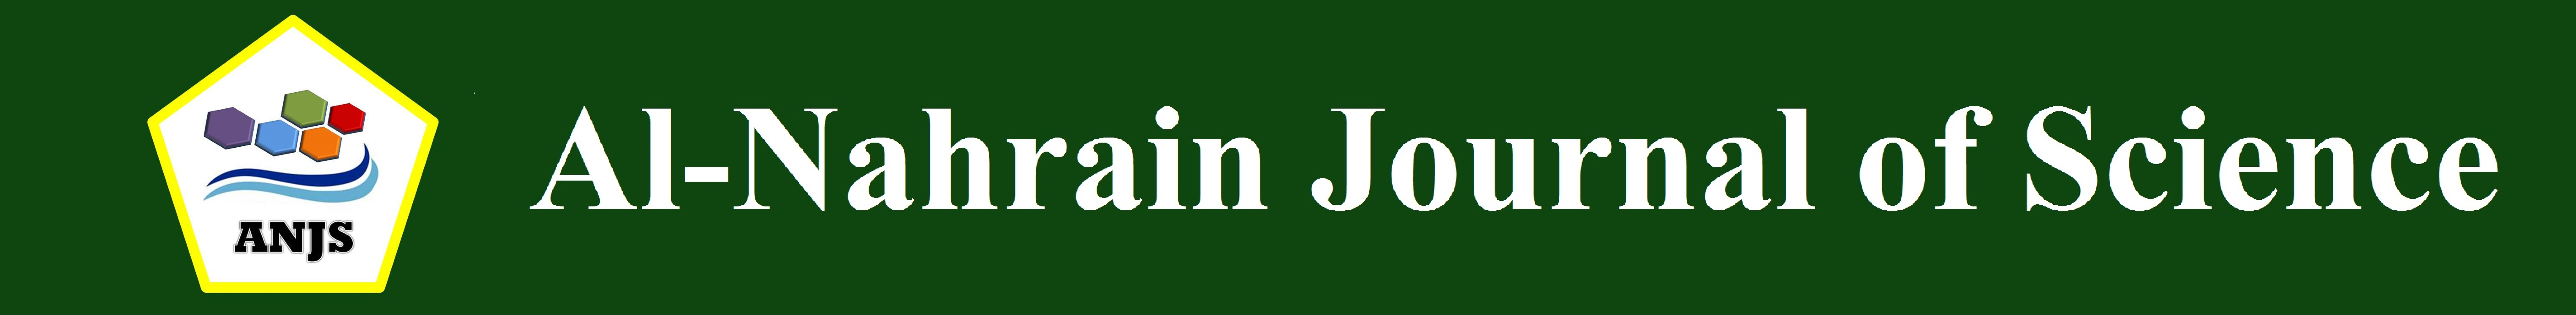 Al-Nahrain Journal of Science (ANJS)